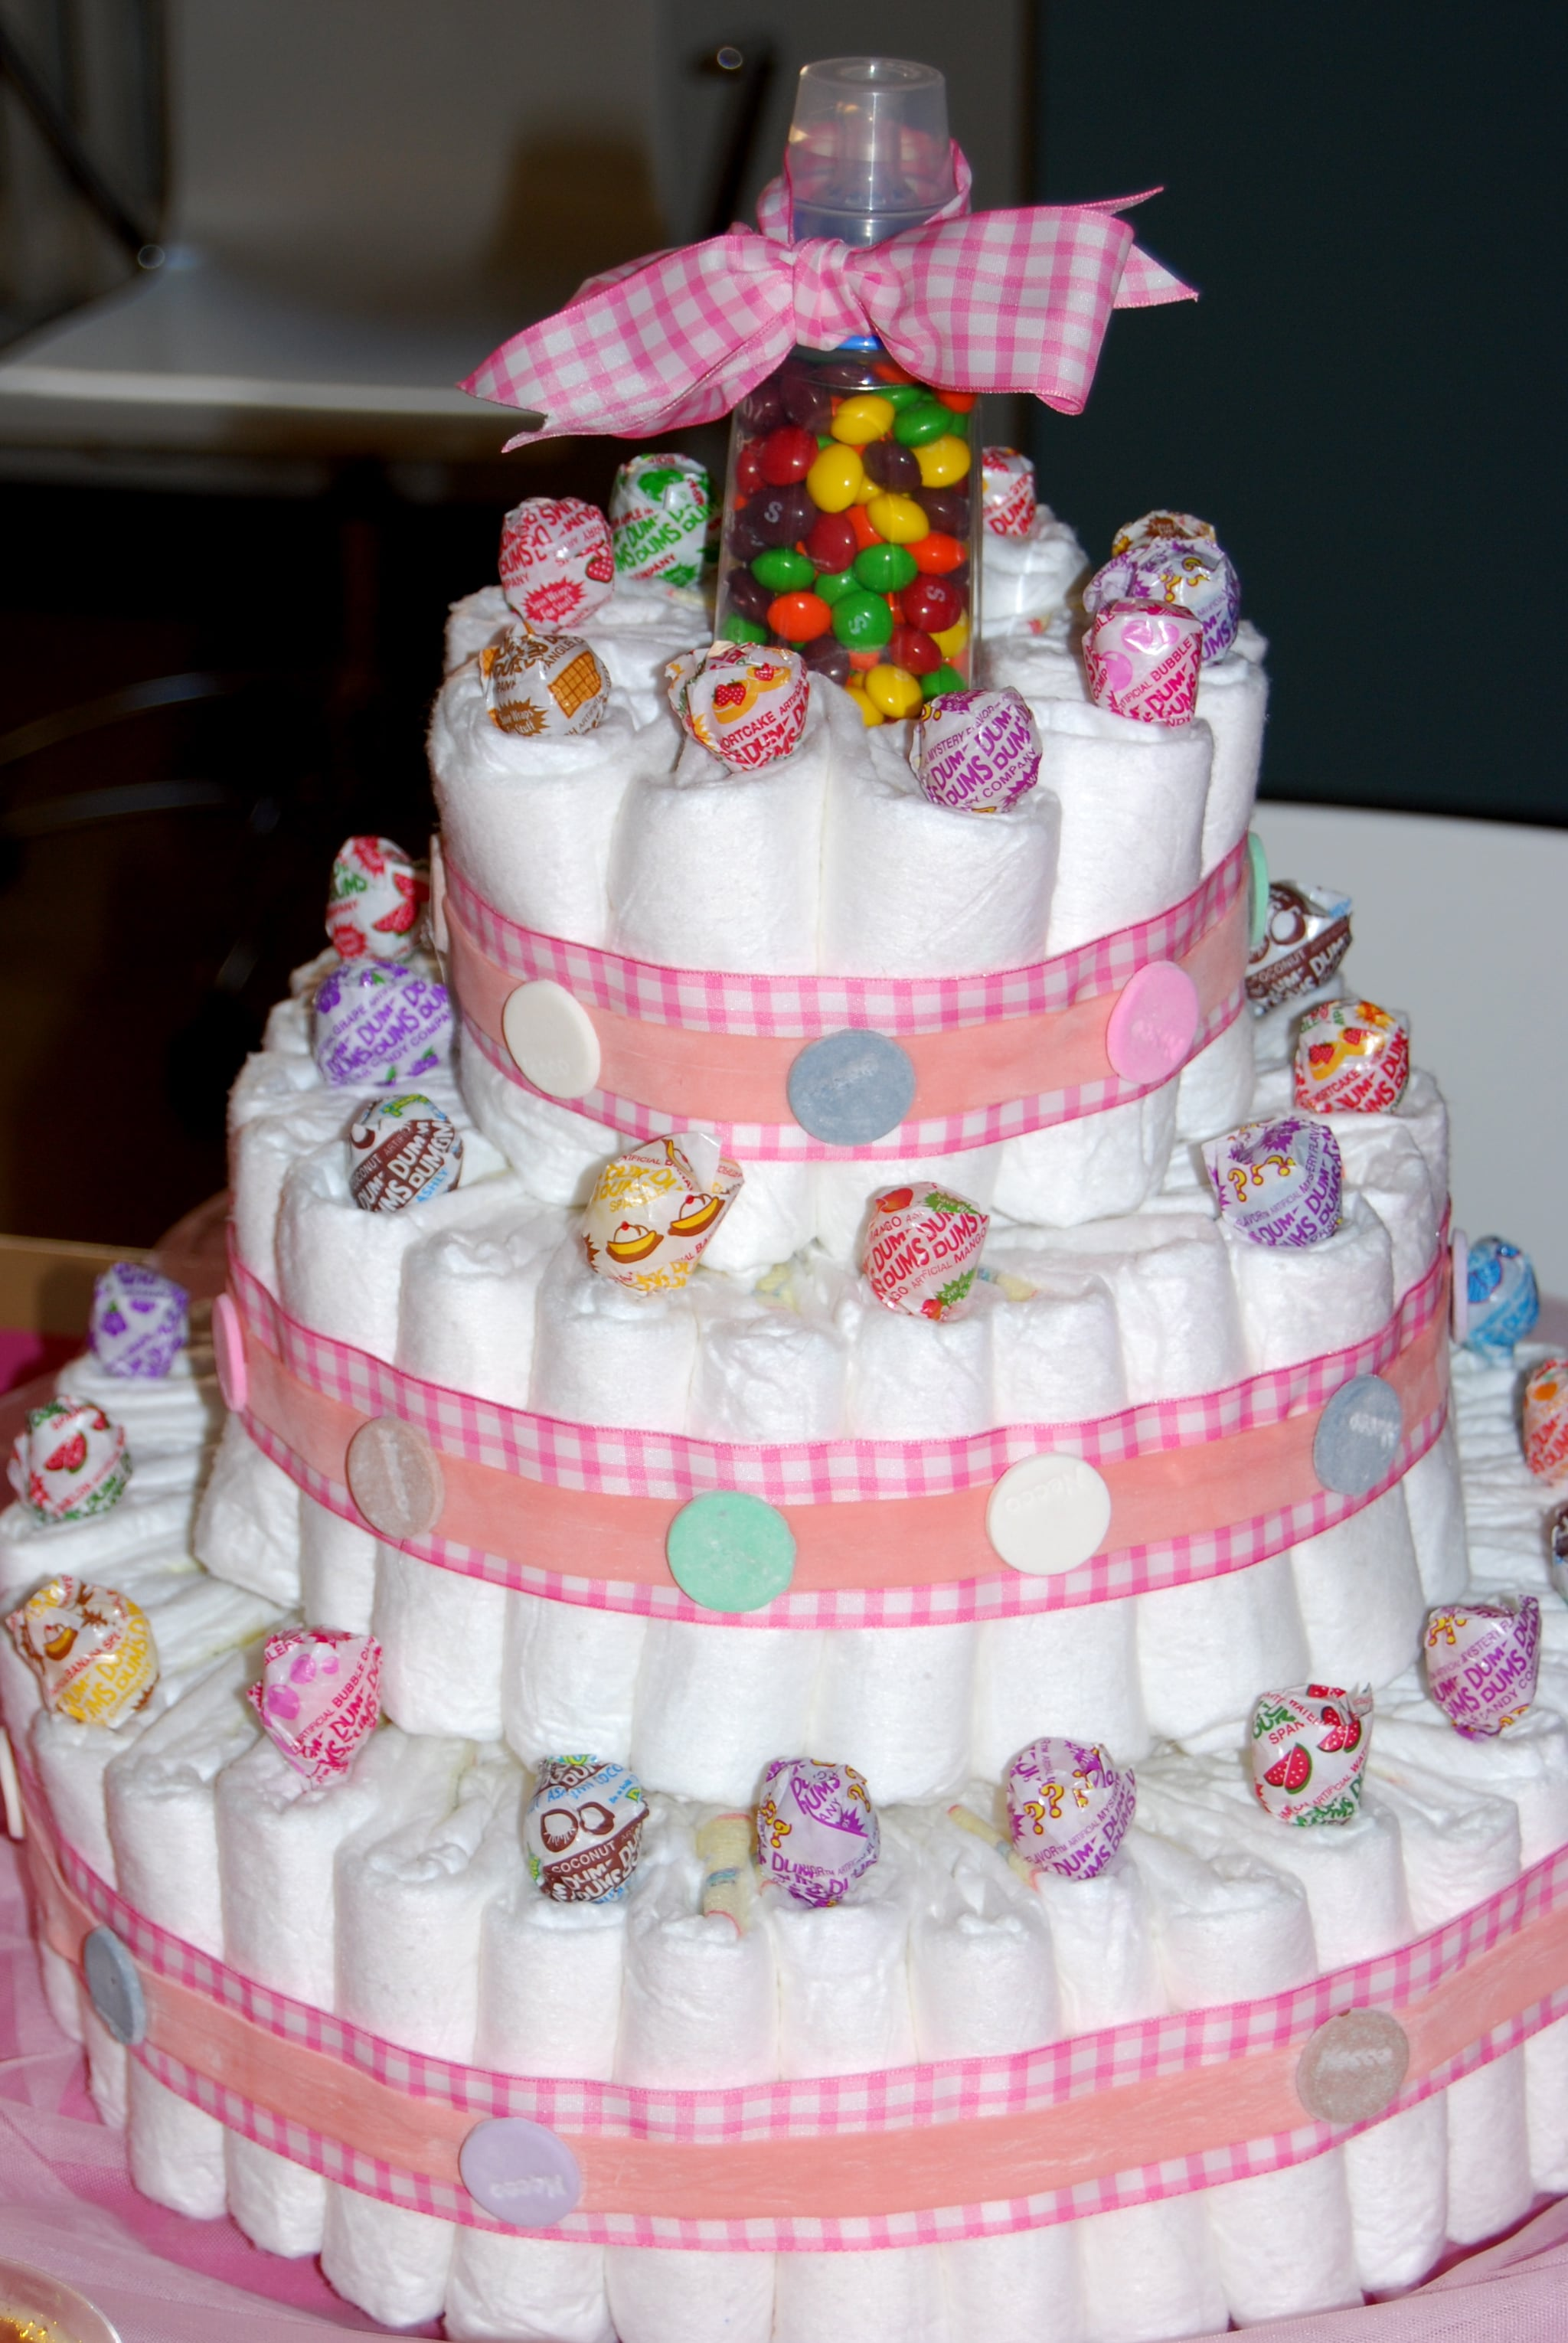 The Sugar Diaper Cake